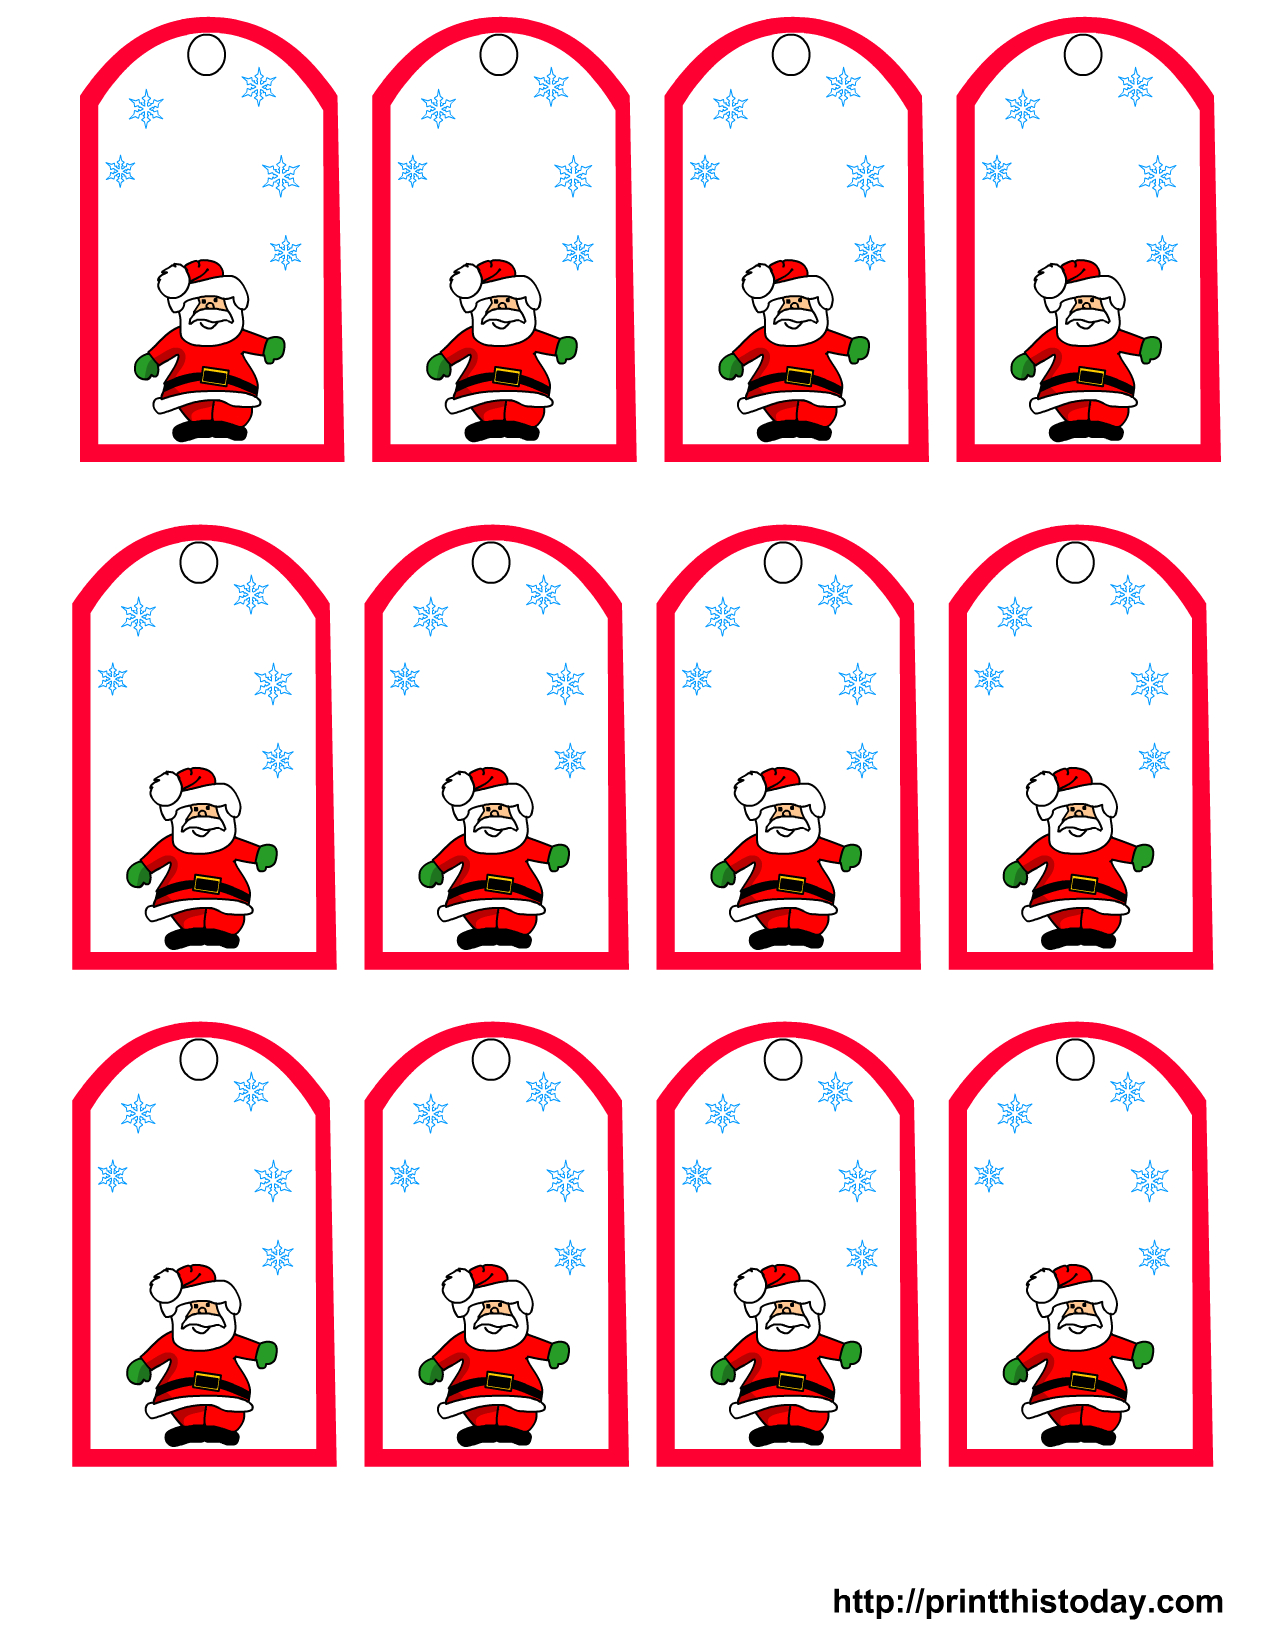 Santa Claus And Snowflakes, Free Printable Christmas Gift Tags - Christmas Labels Free Printable Templates